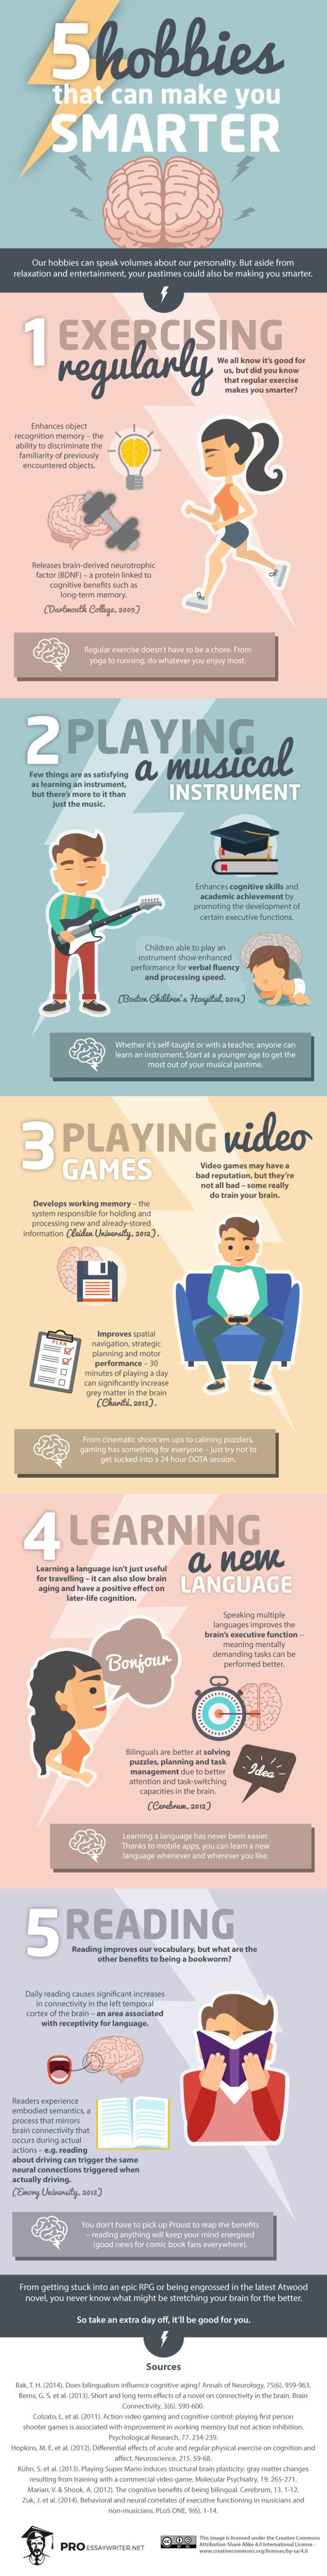 5 Hobbies That Can Make You Smarter [by Pro Essay Writer -- via #tipsographic]…